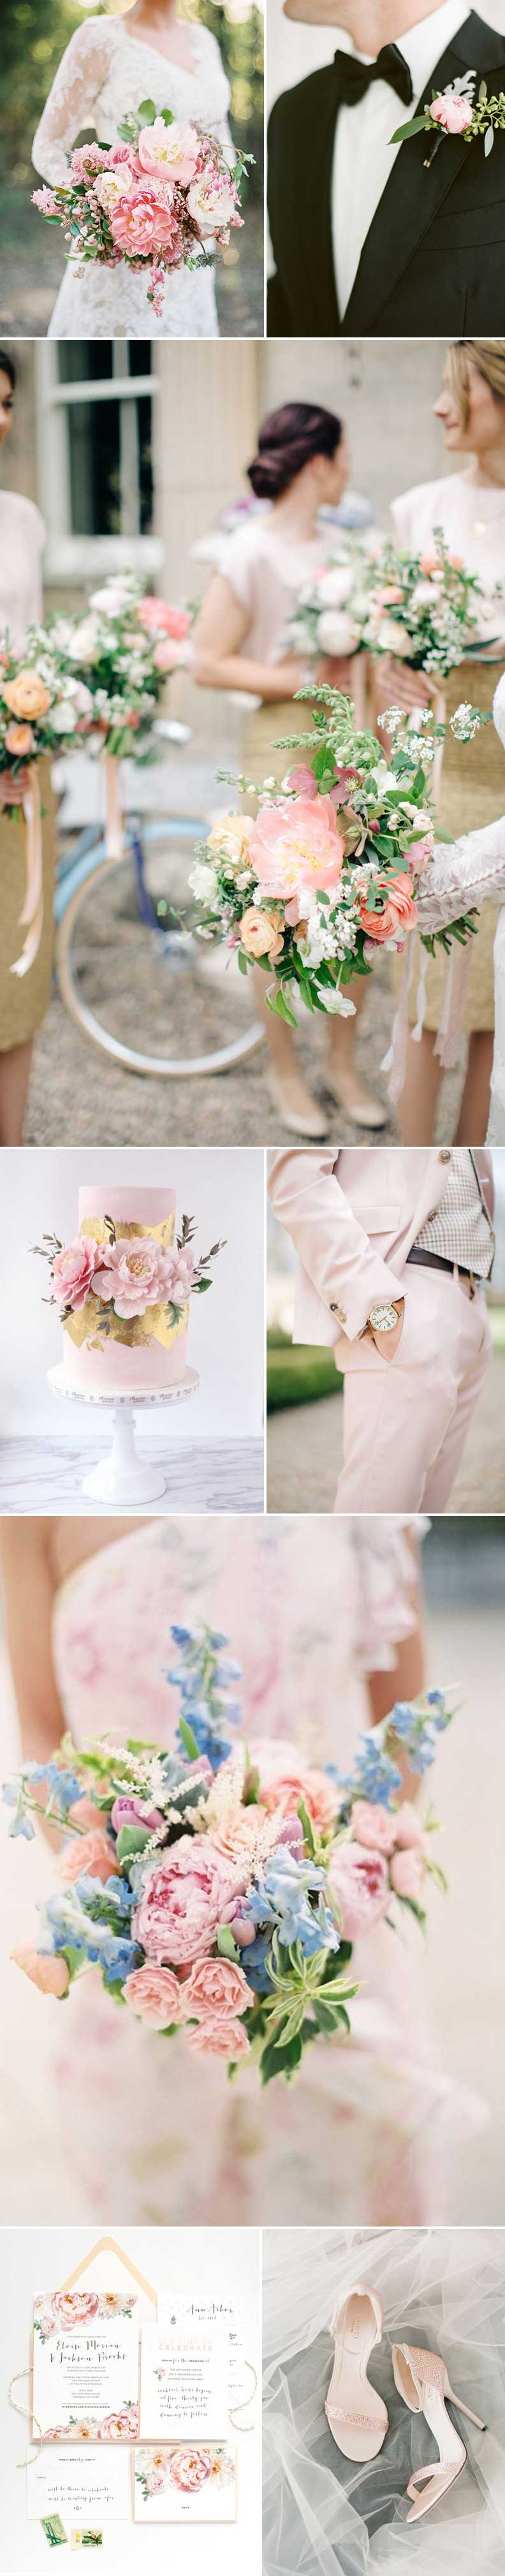 Wedding Inspiration in Peony Pink